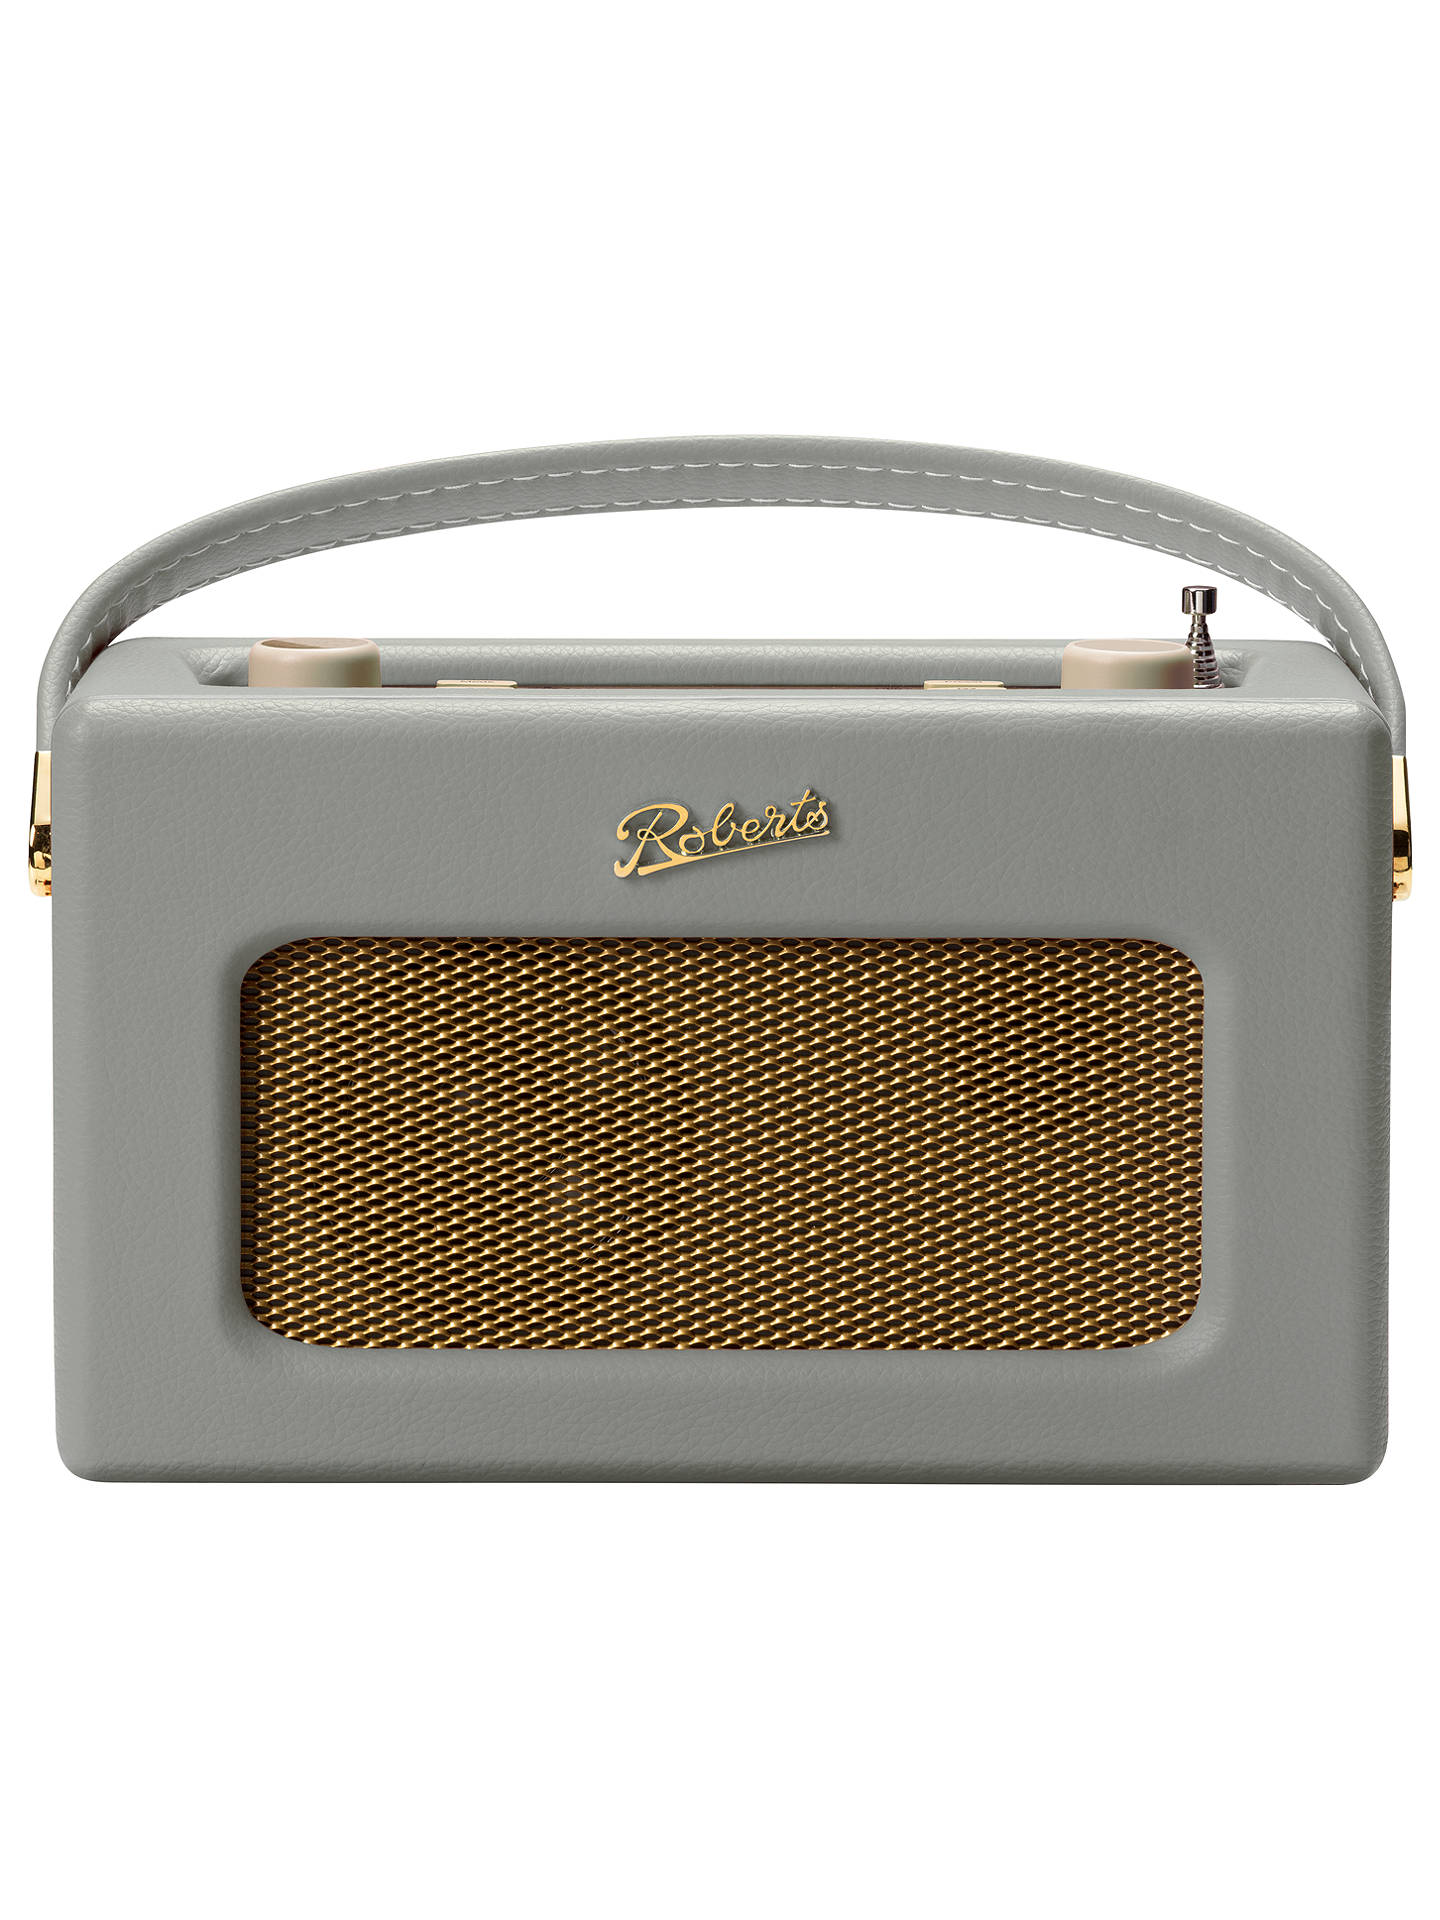 BuyROBERTS Revival RD70 DAB/DAB+/FM Bluetooth Digital Radio with Alarm, Dove Grey Online at johnlewis.com